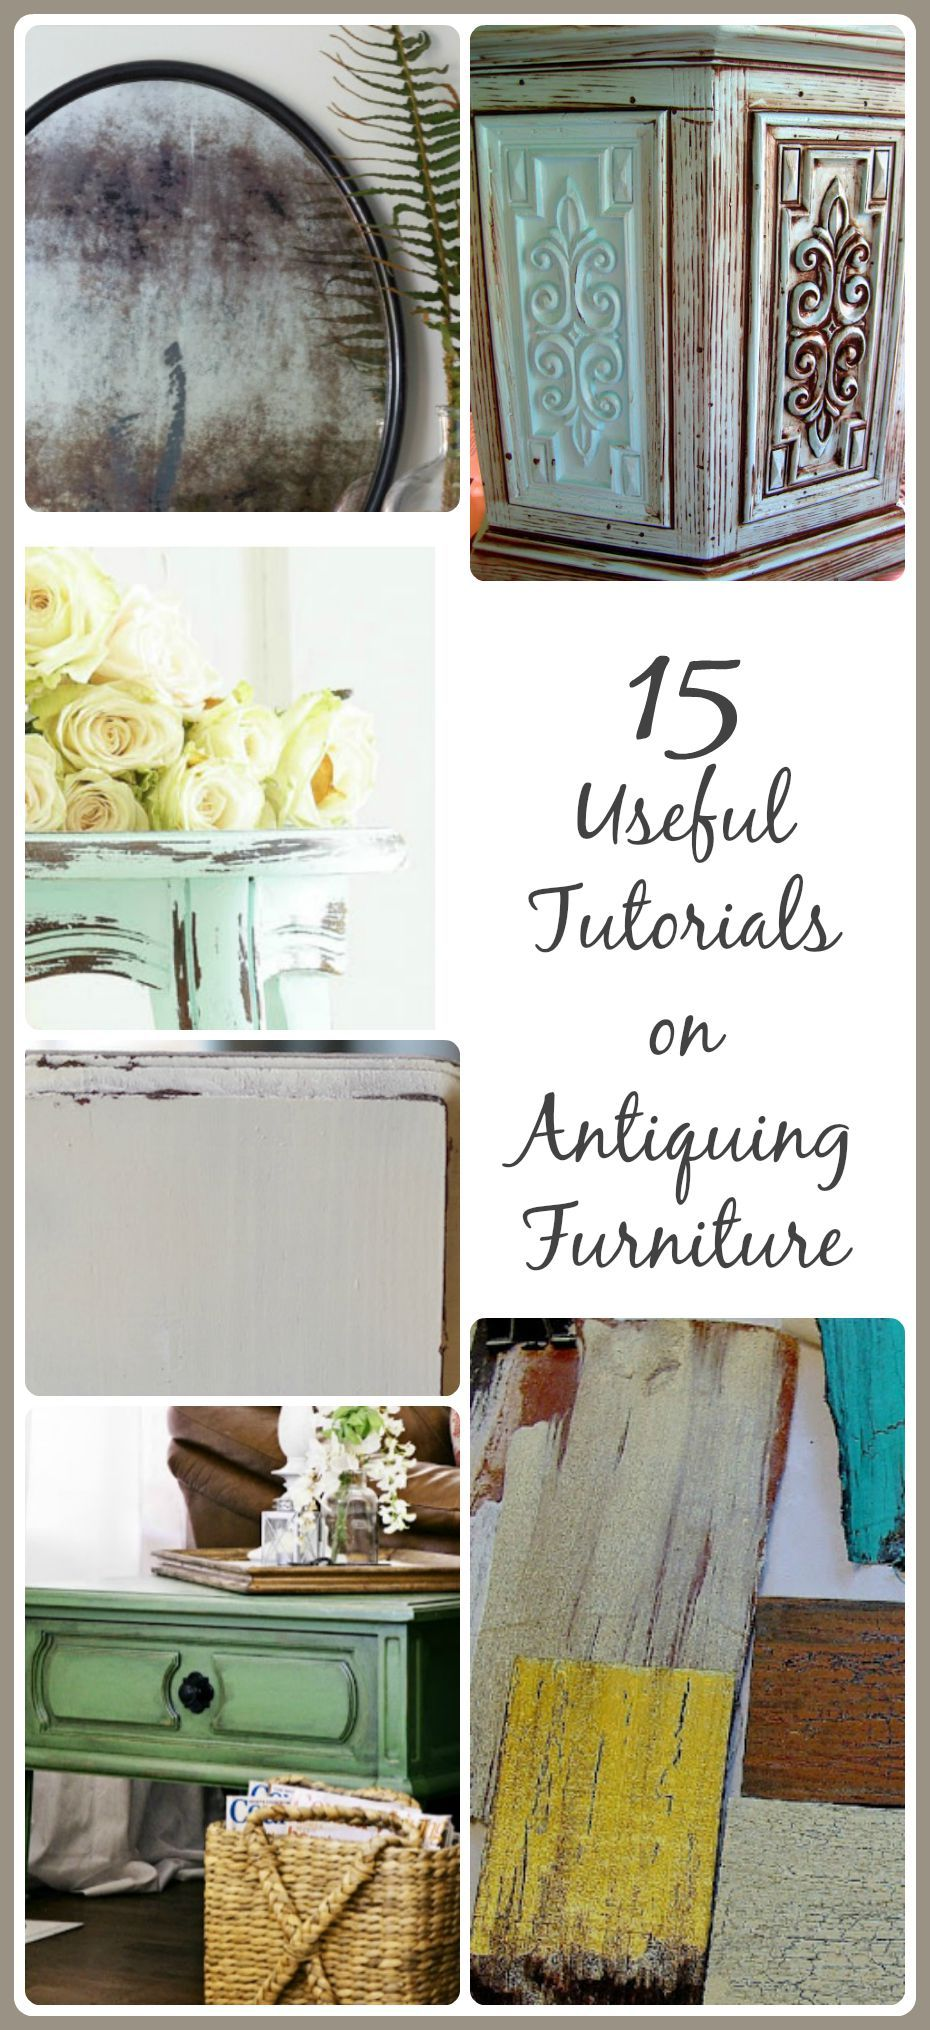 15 Useful Tutorials On Antiquing Furniture